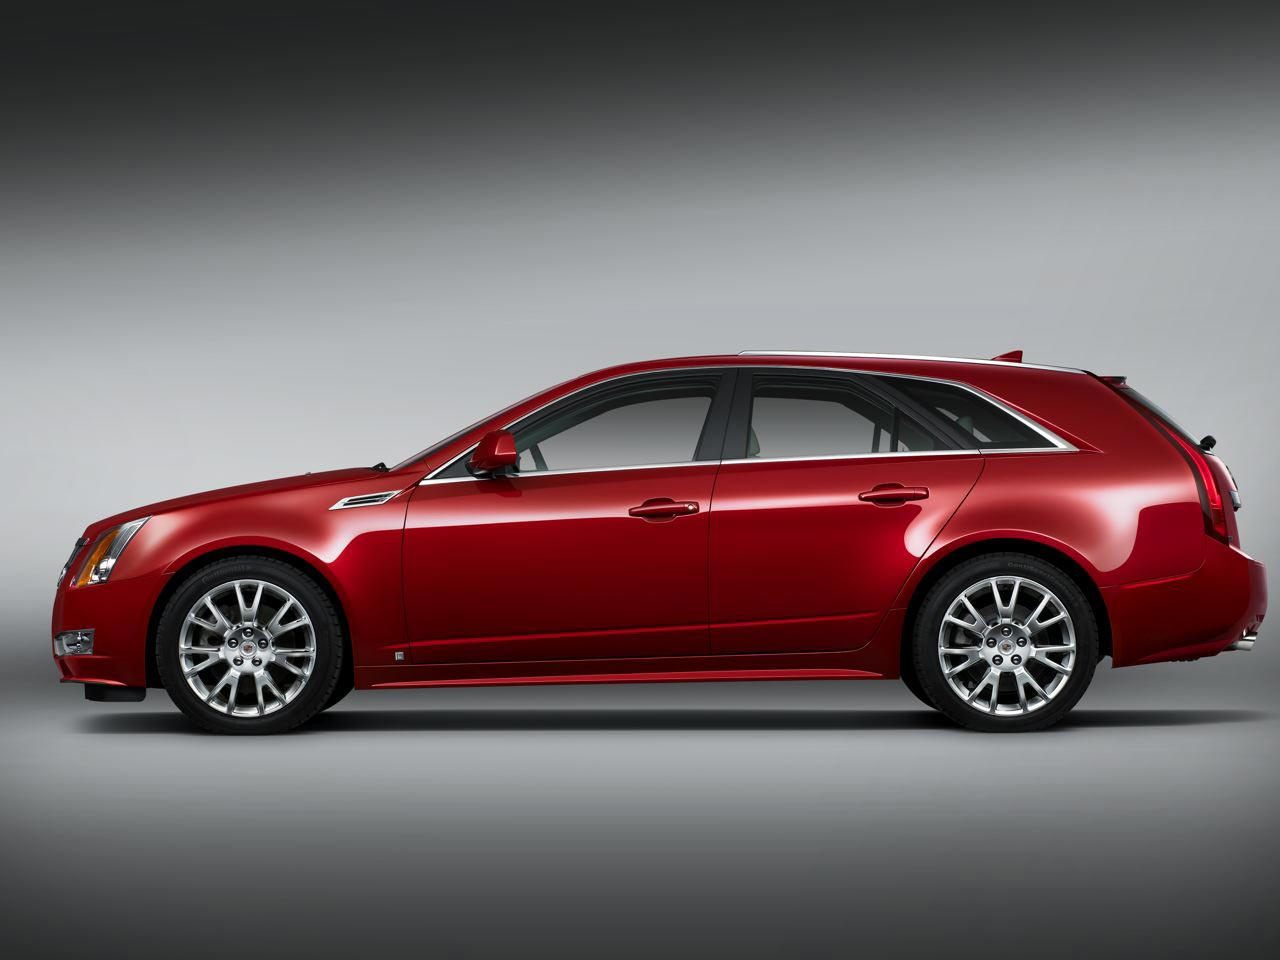 2010 Cadillac CTS Sport Wagon Takes Driving to the Next Level